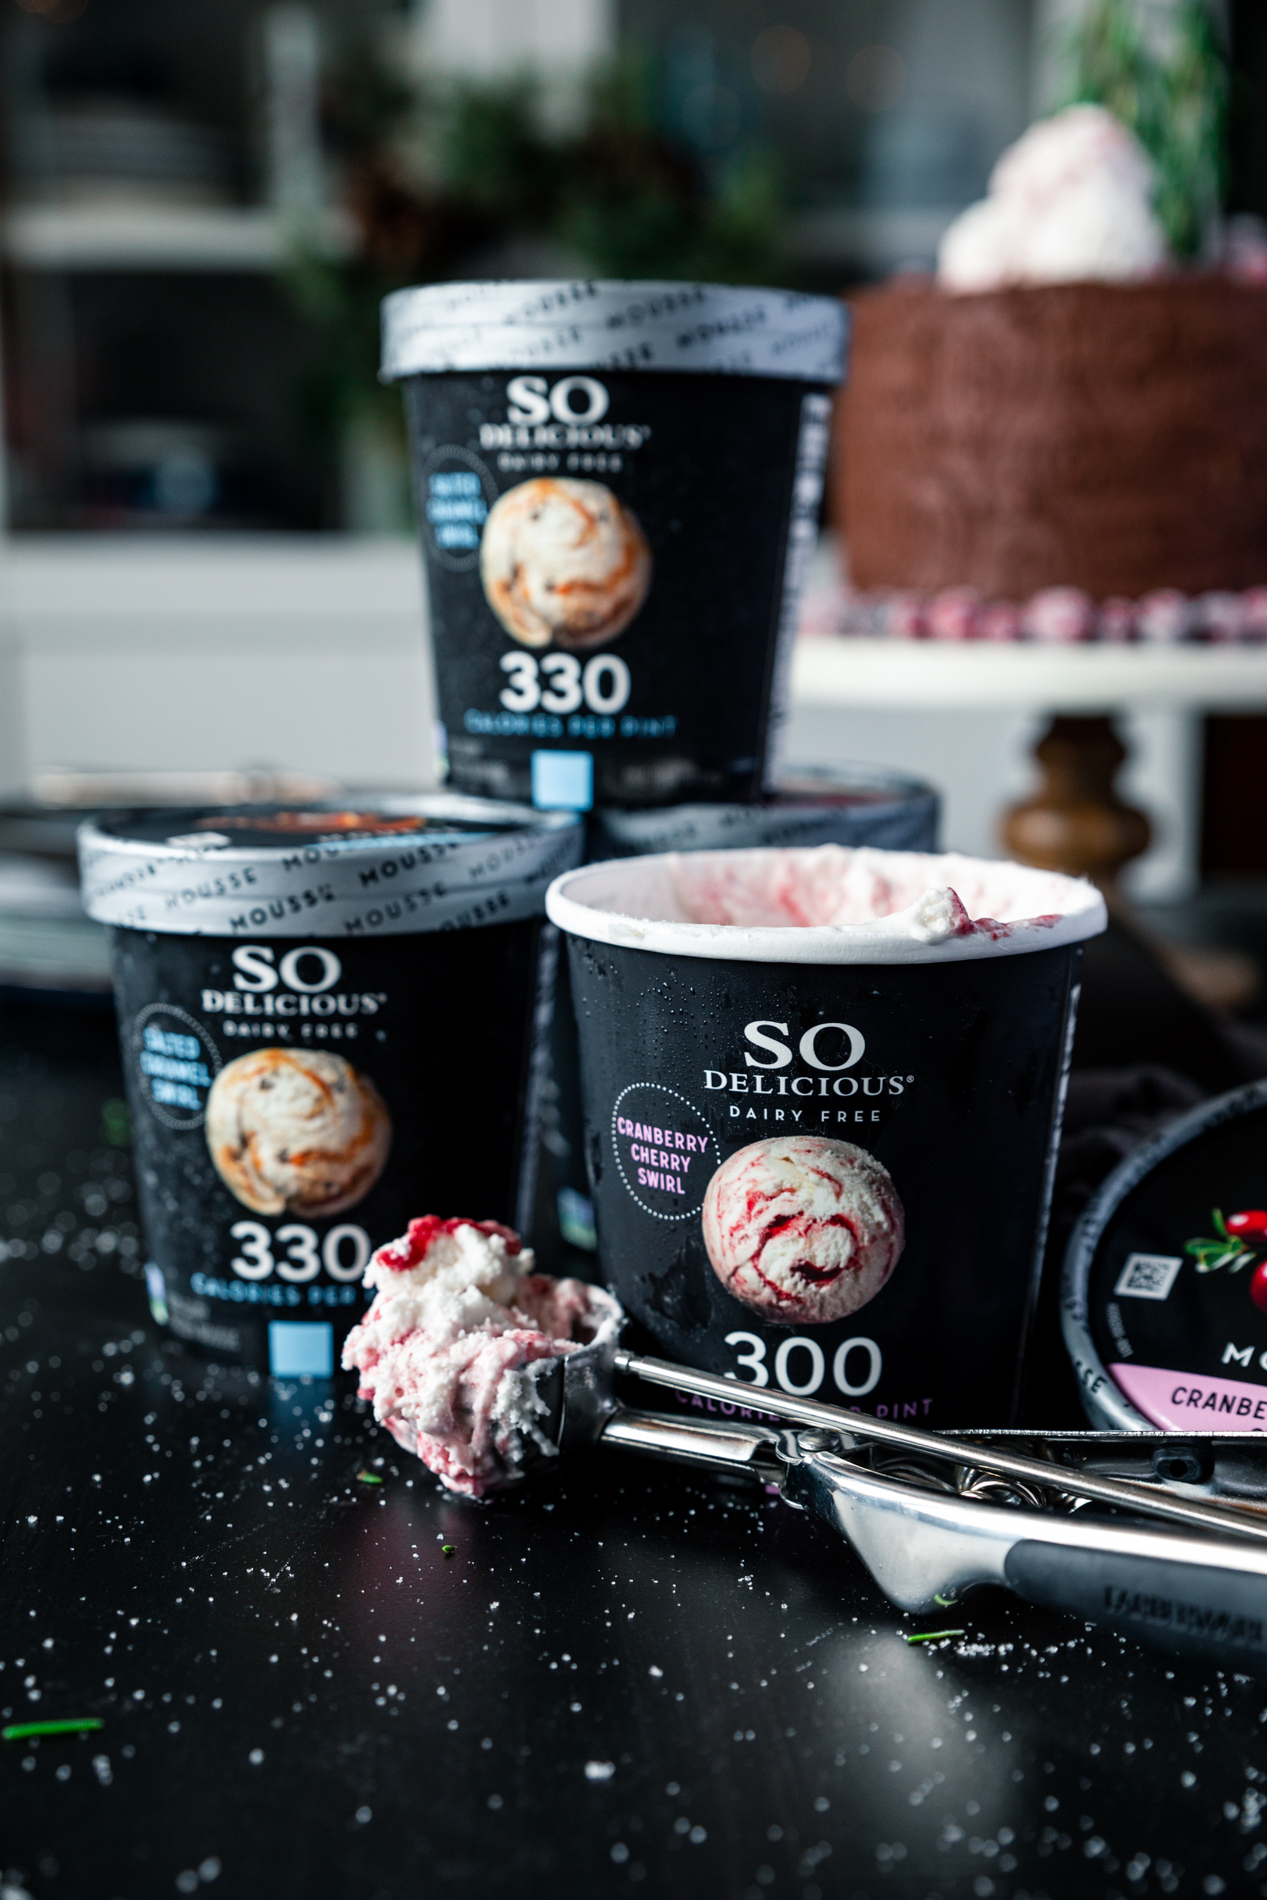 straight forward view of pints of SO Delicious Dairy Free Frozen Mousse in Cranberry Cherry Swirl and Salted Caramel Swirl, with a double chocolate tree stump cake in the background.